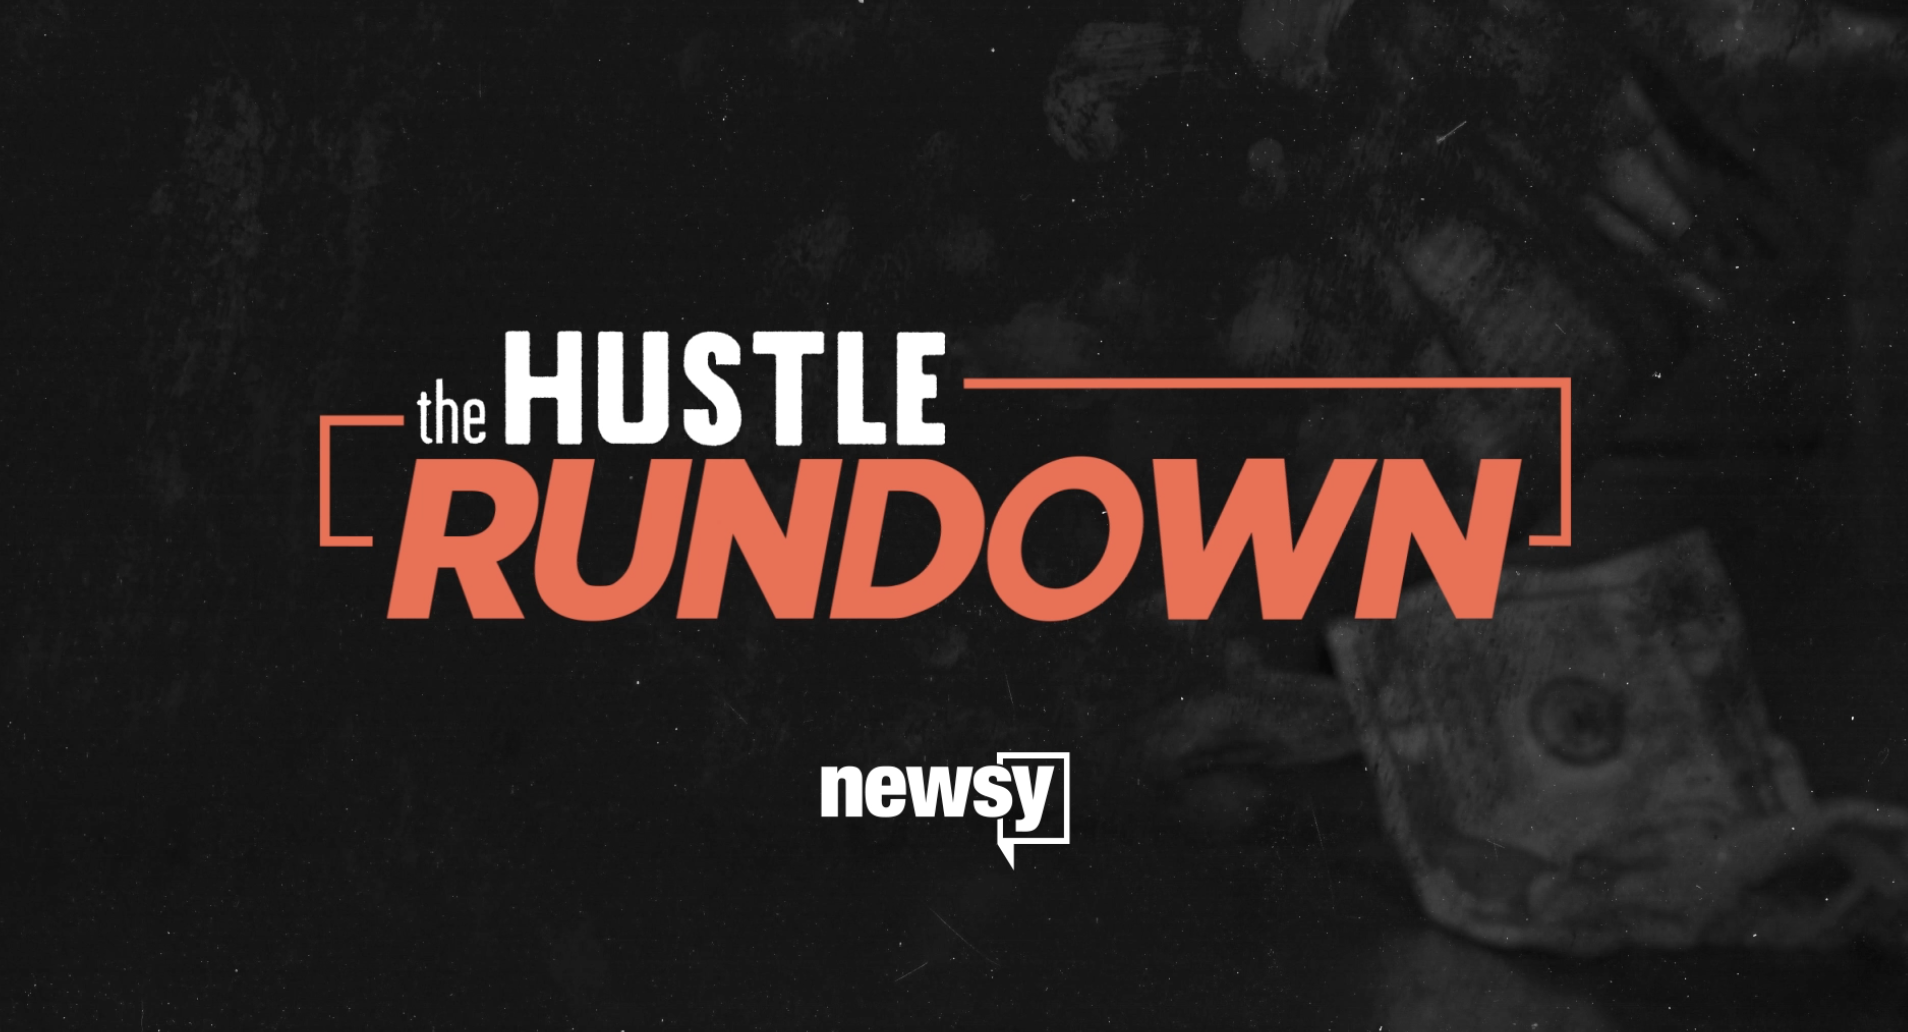 The Hustle Rundown logo